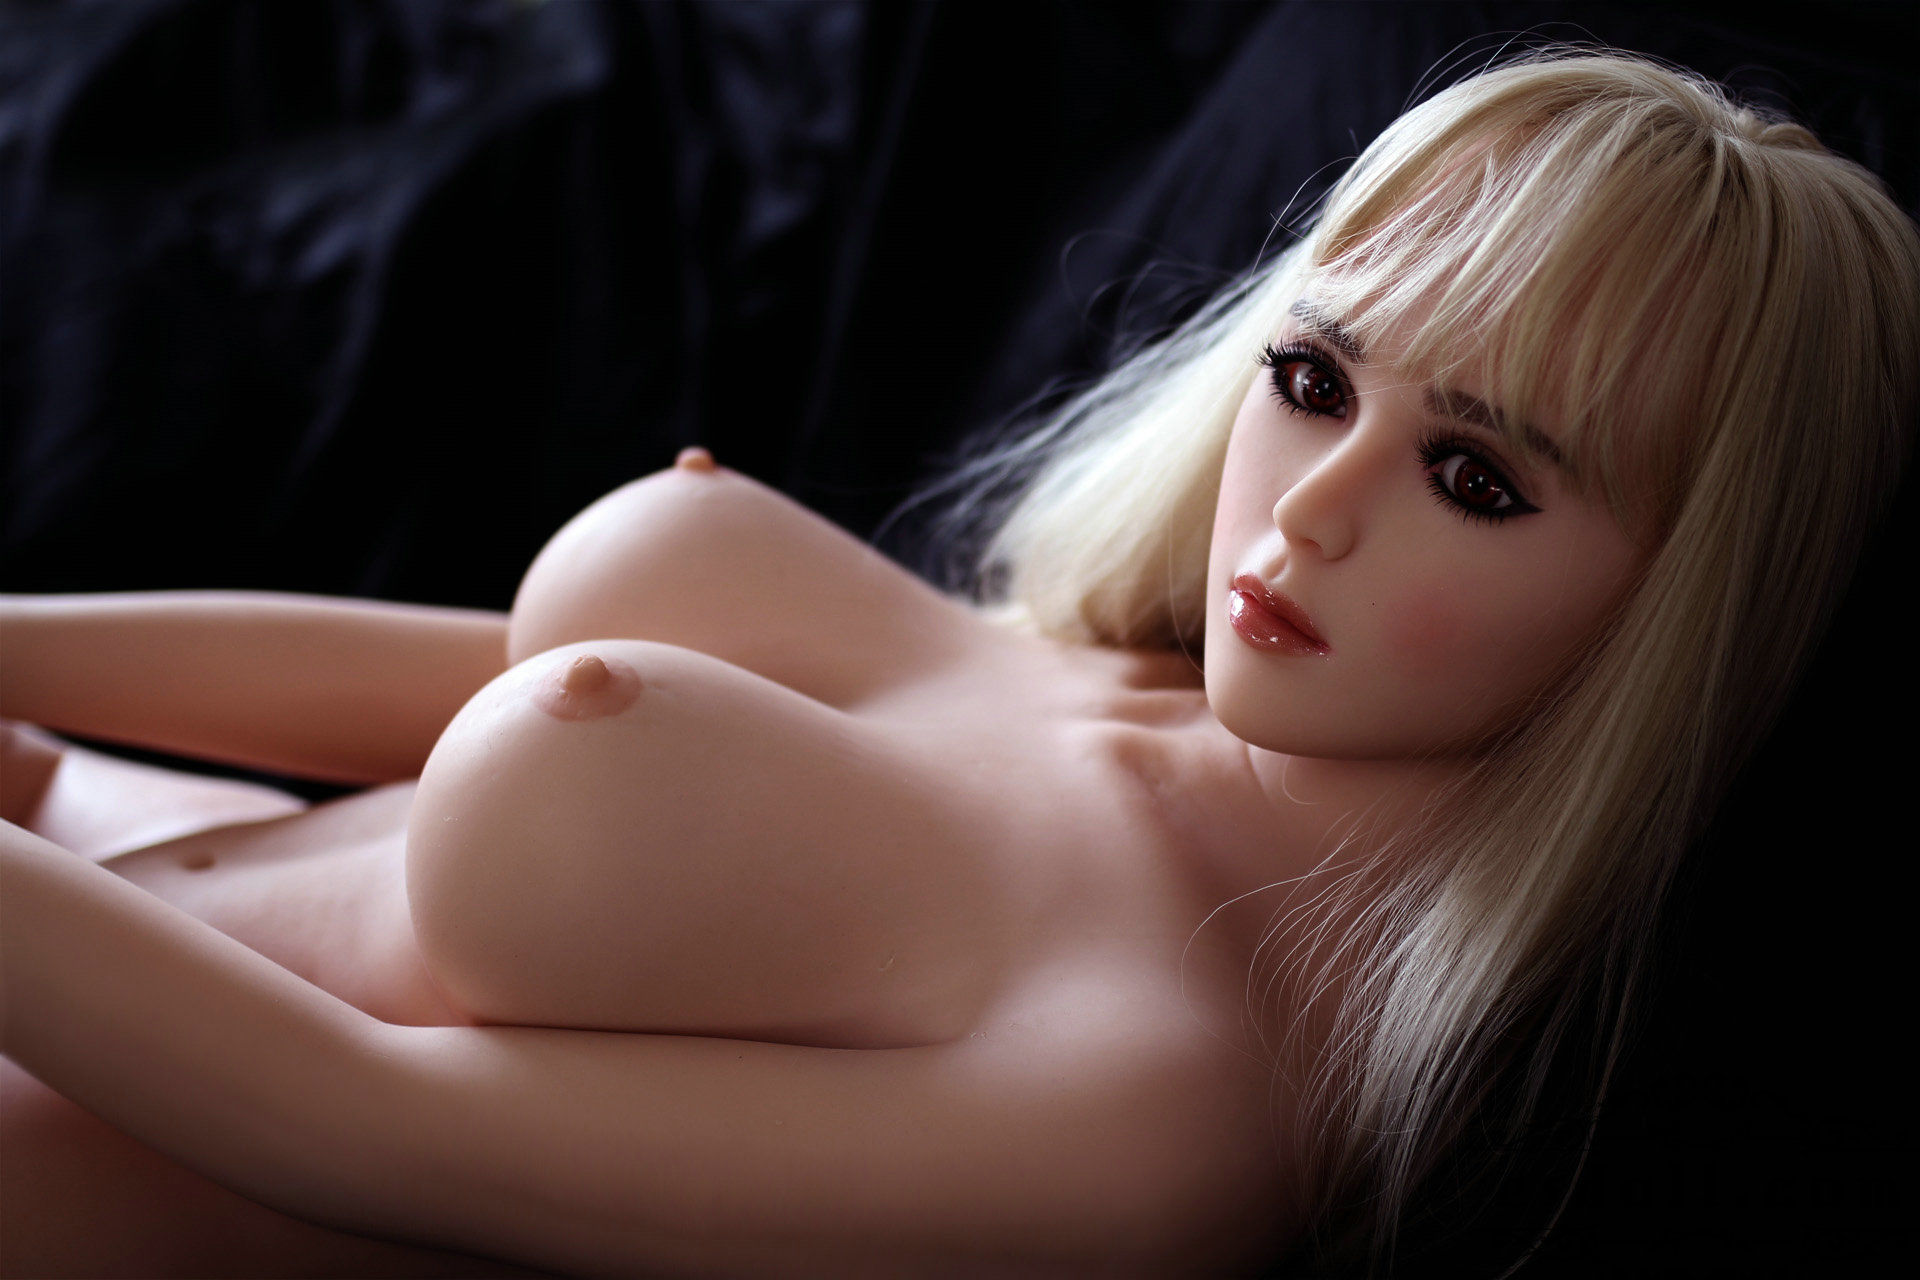 165cm 5.41ft Ivy sex doll - 35